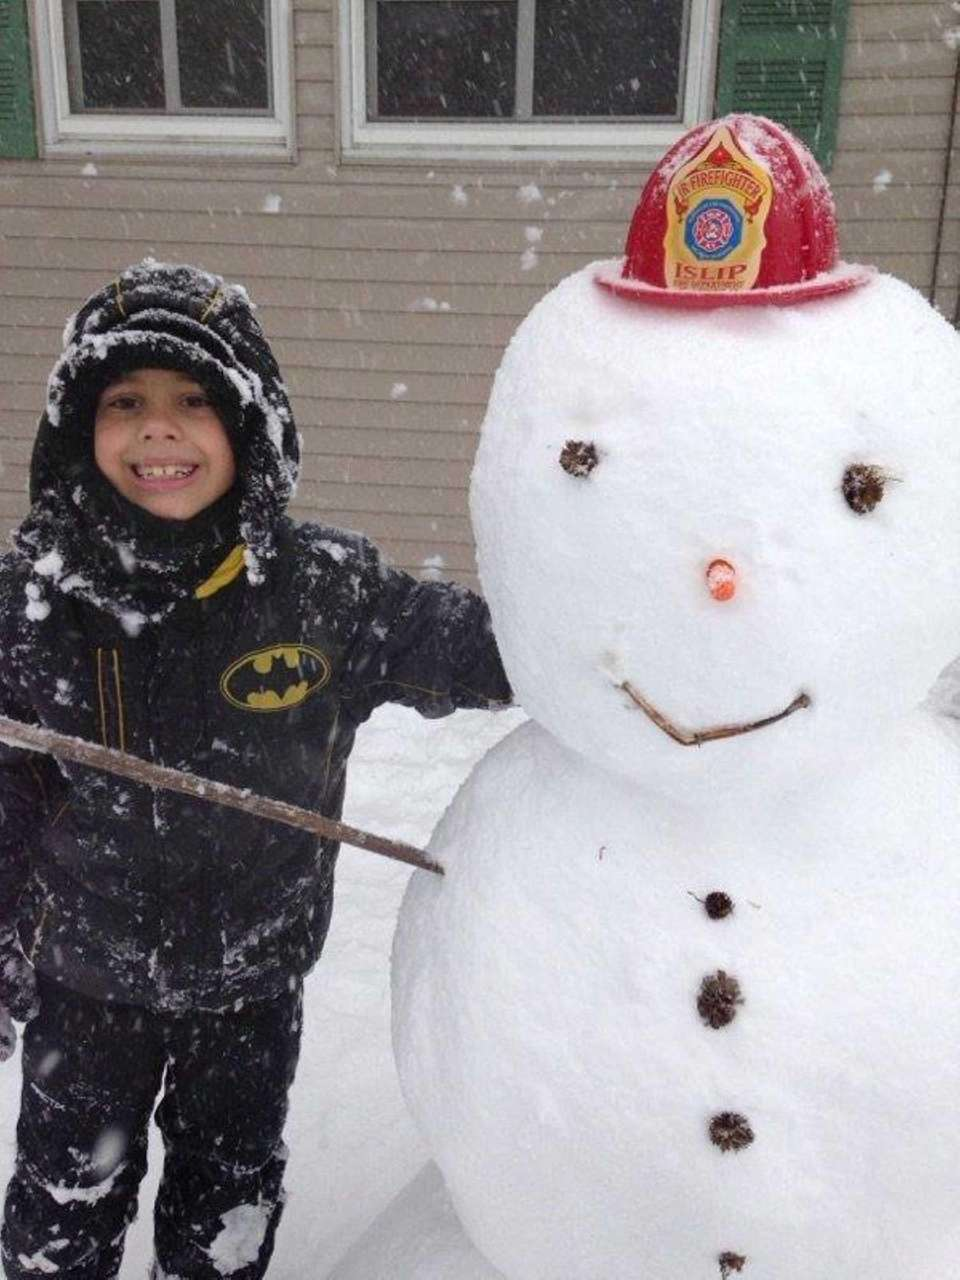 @News12LI our snowman yesterday, then today after more